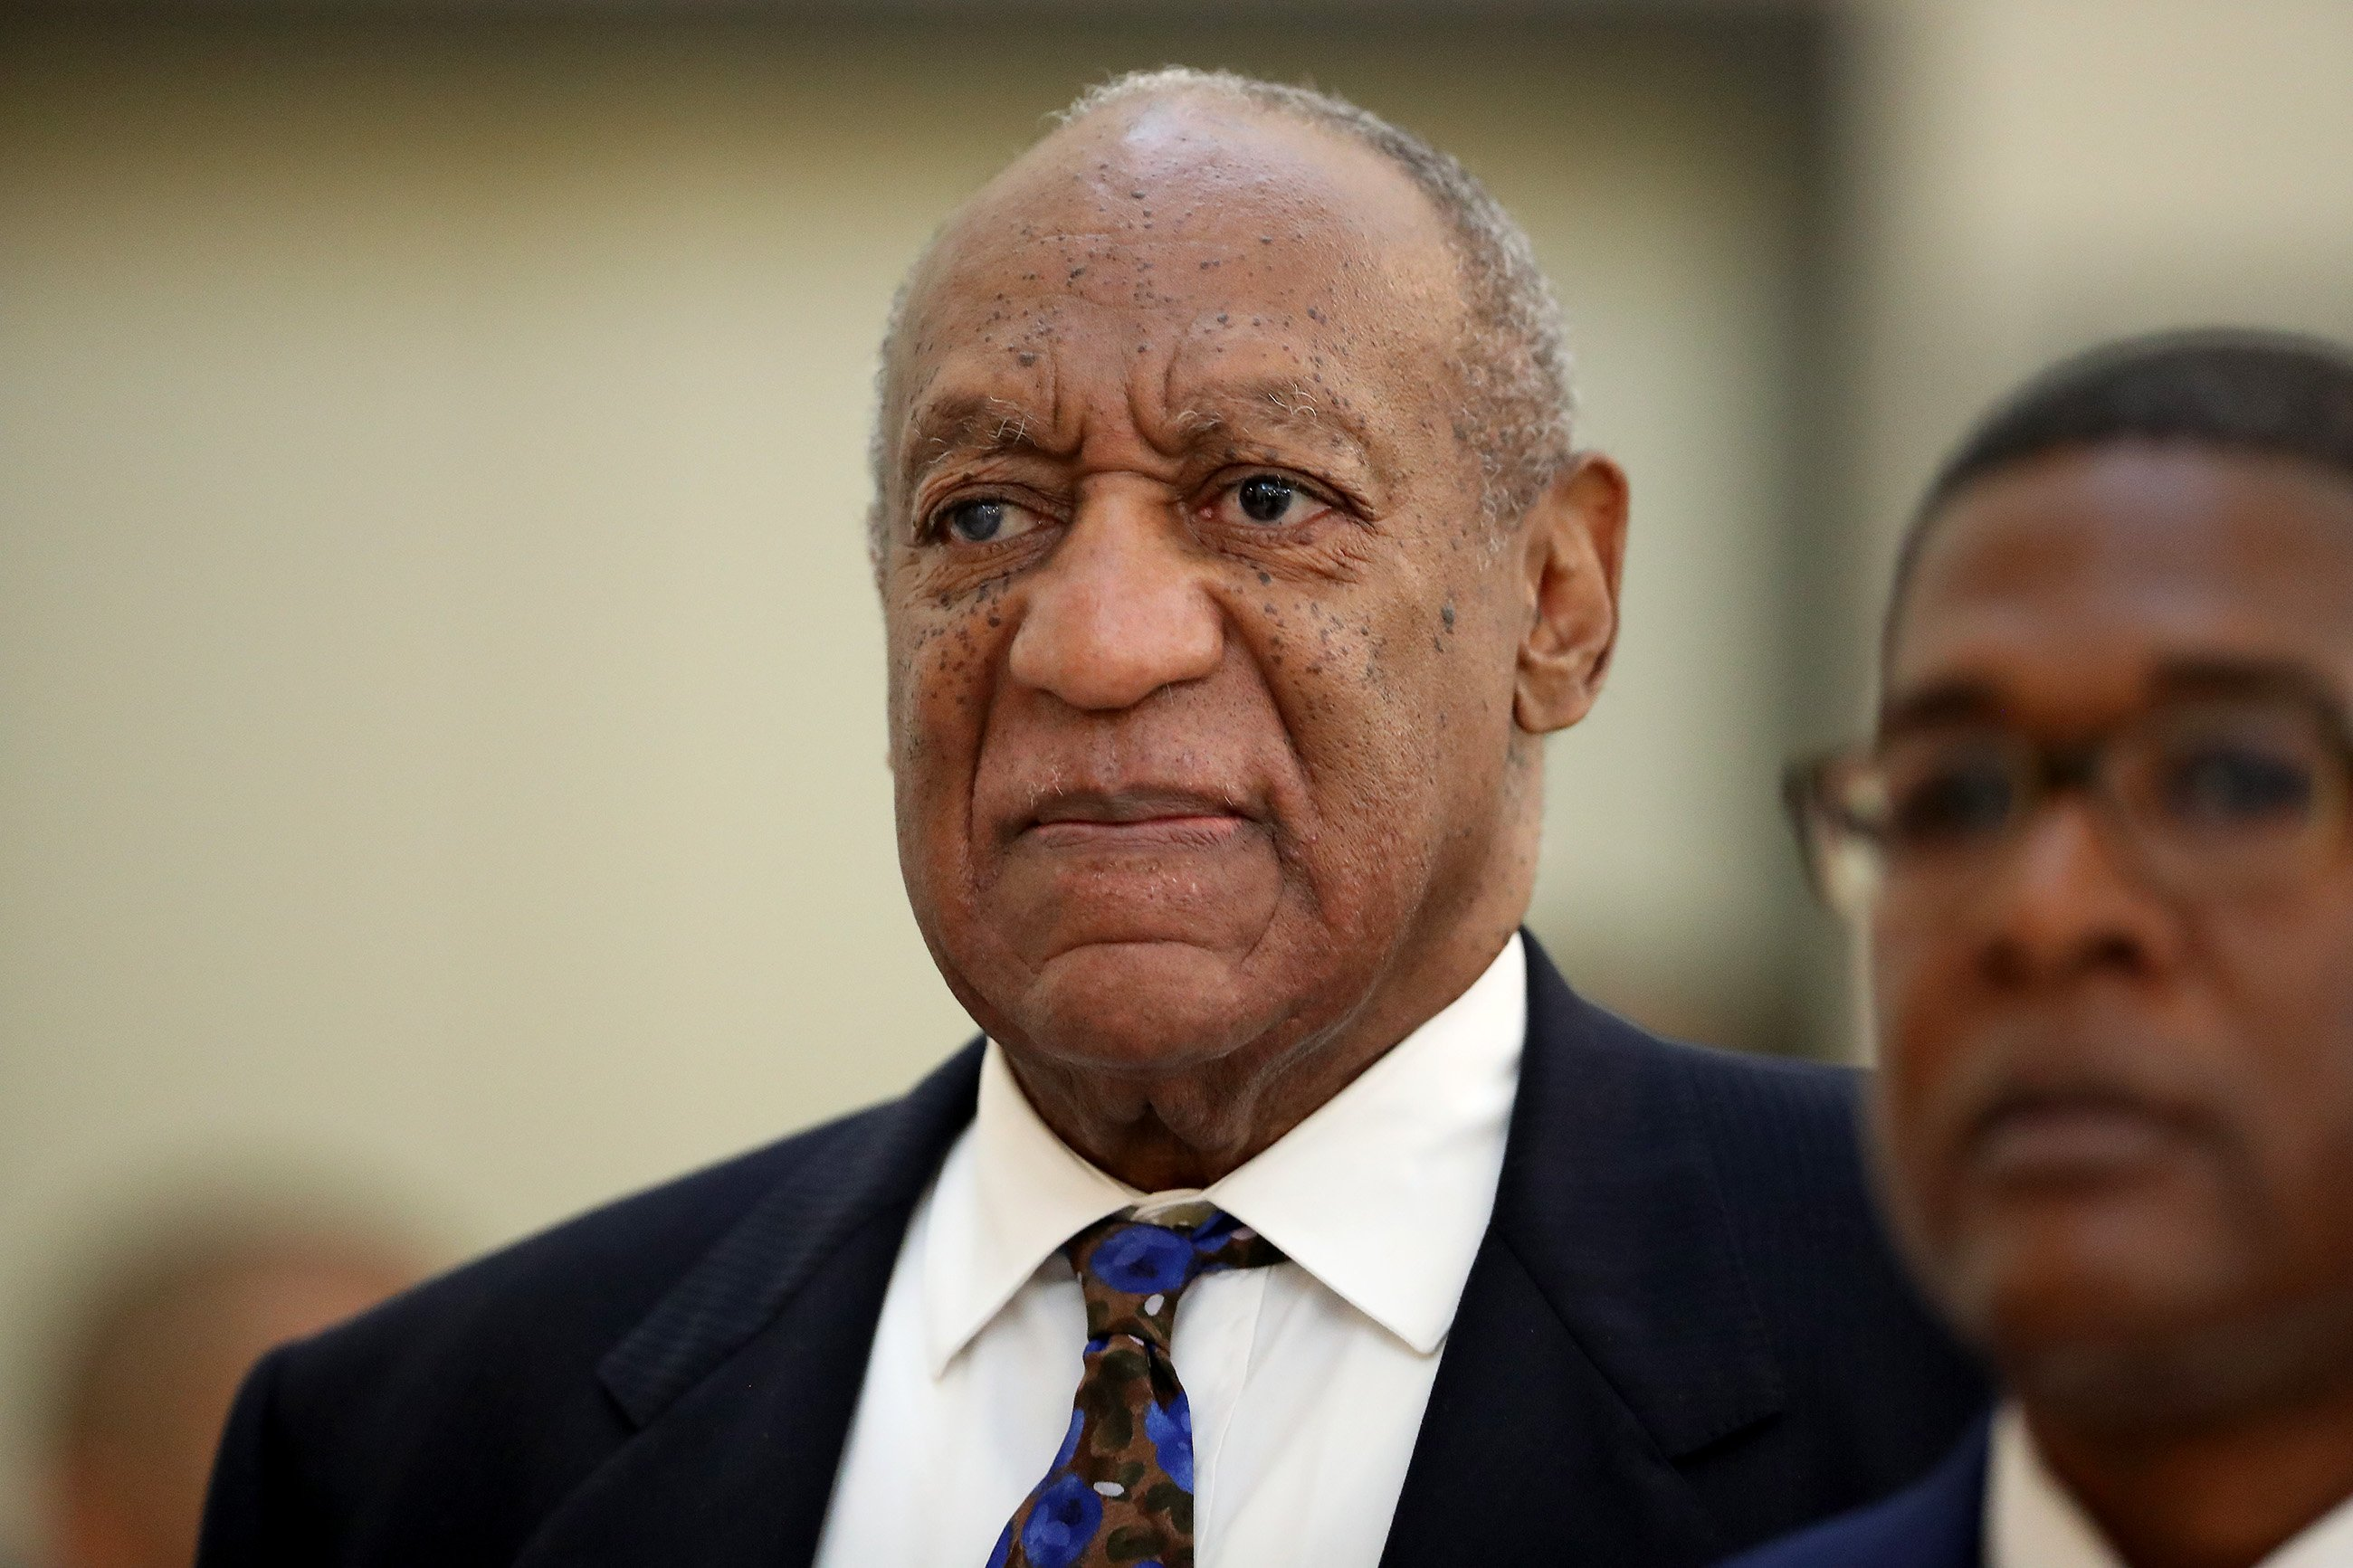 Bill Cosby, fallen actor | Photo: Getty Images